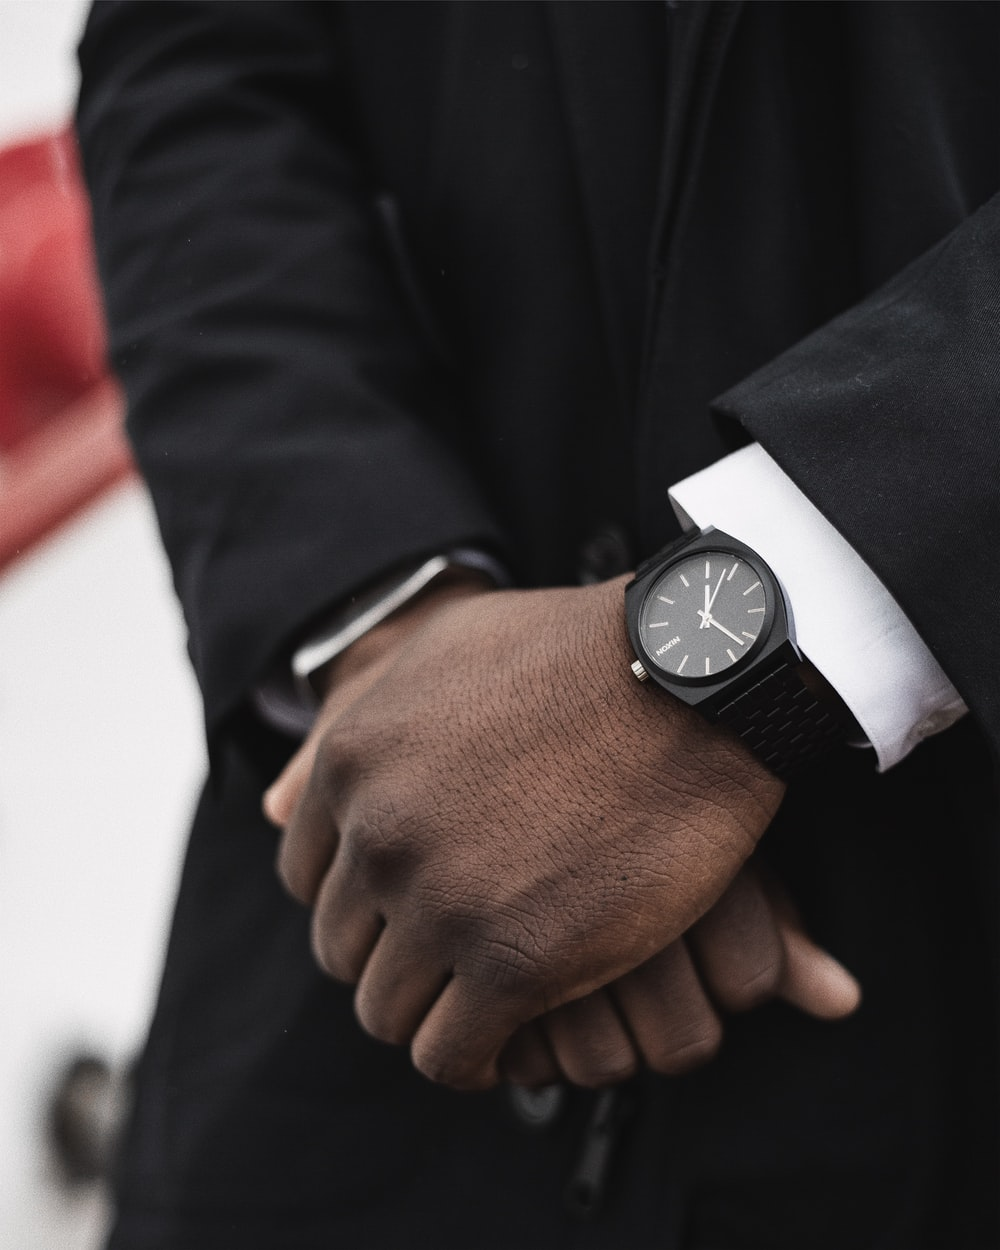 person wearing black and white analog watch